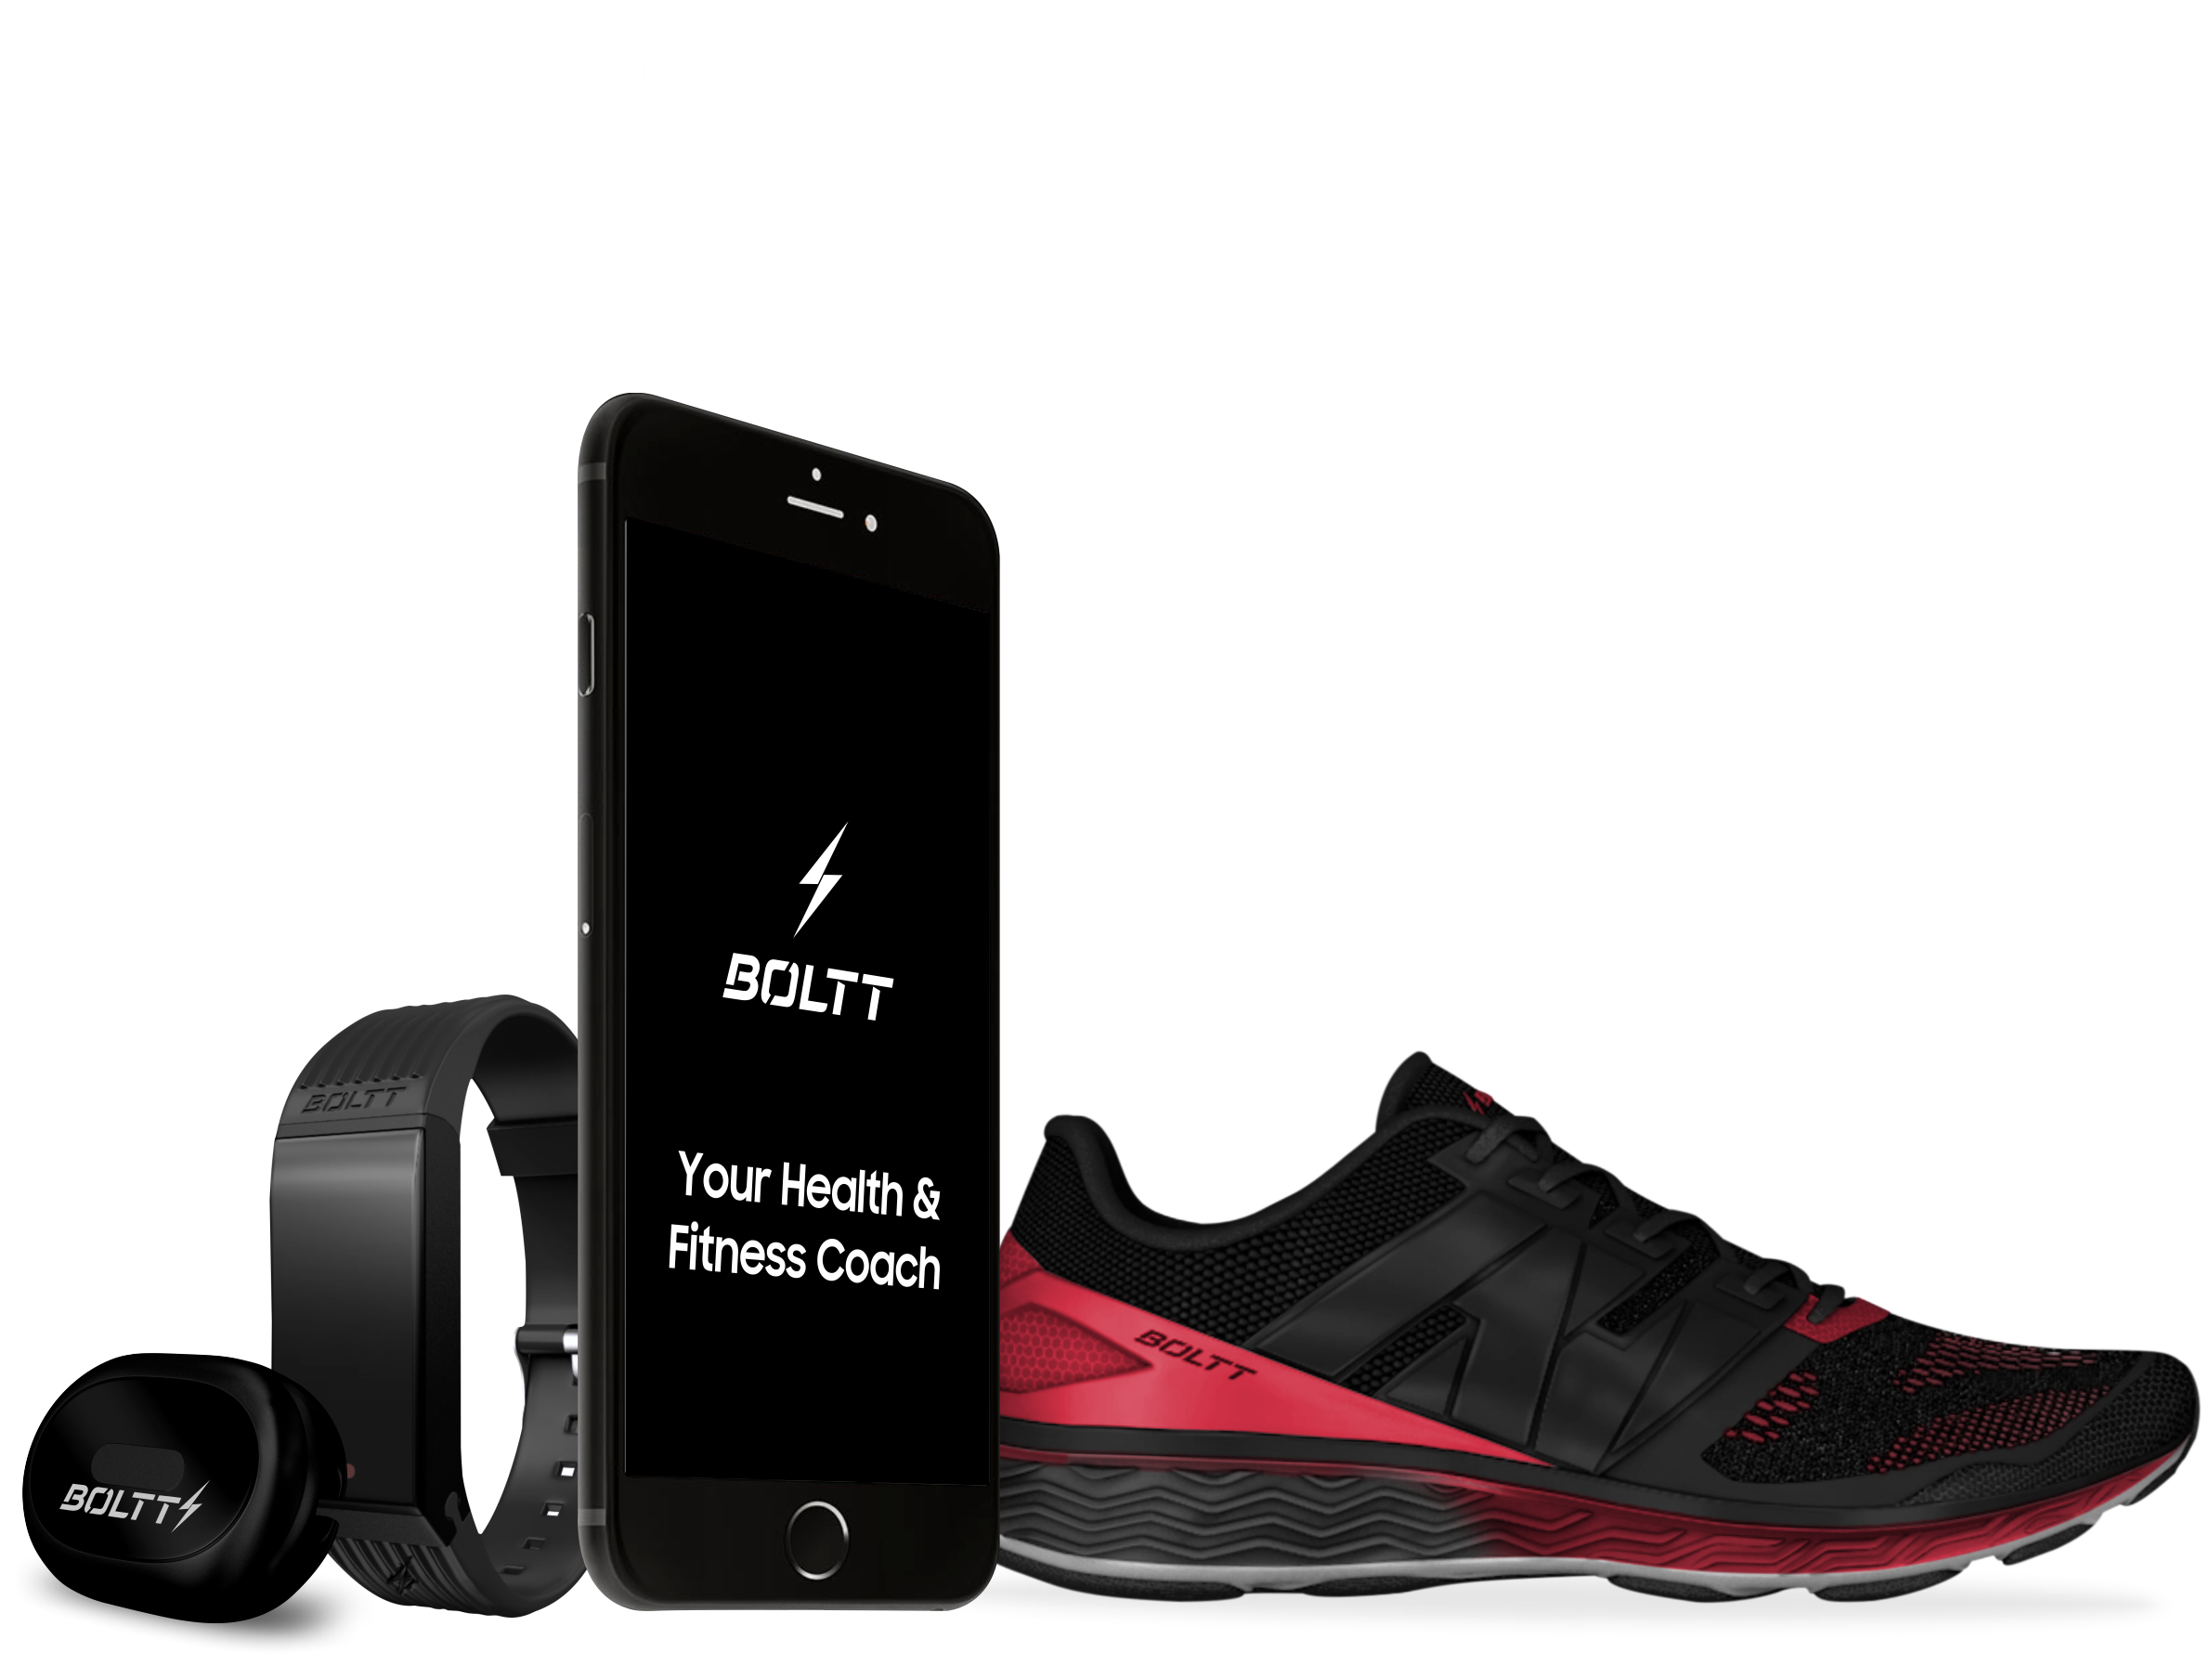 Boltt smart AI wearables launched at CES 2017